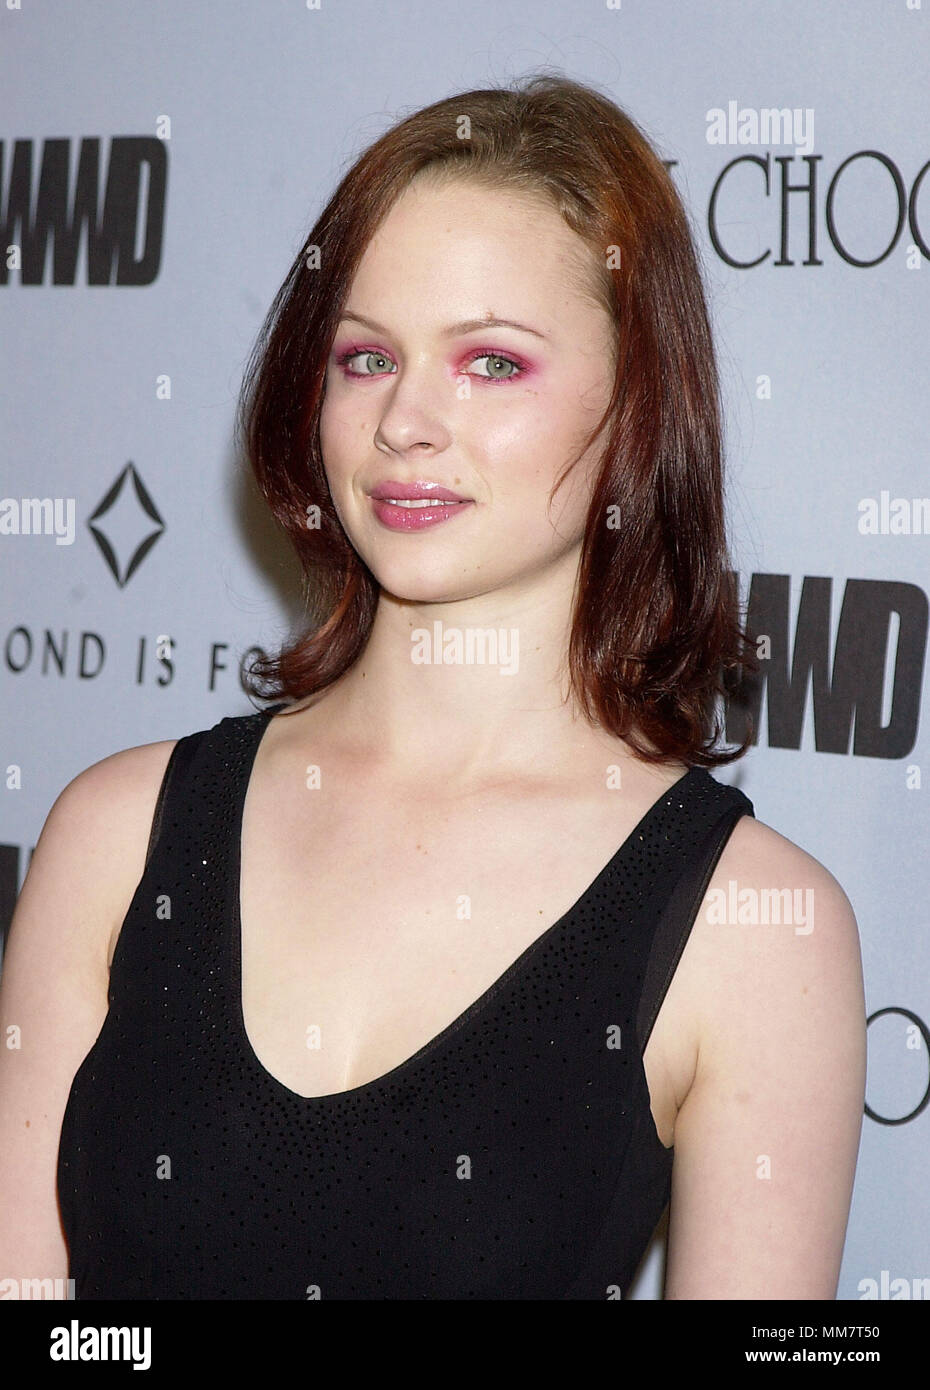 Thora Birch Arriving At The Party Diamond Is Forever In